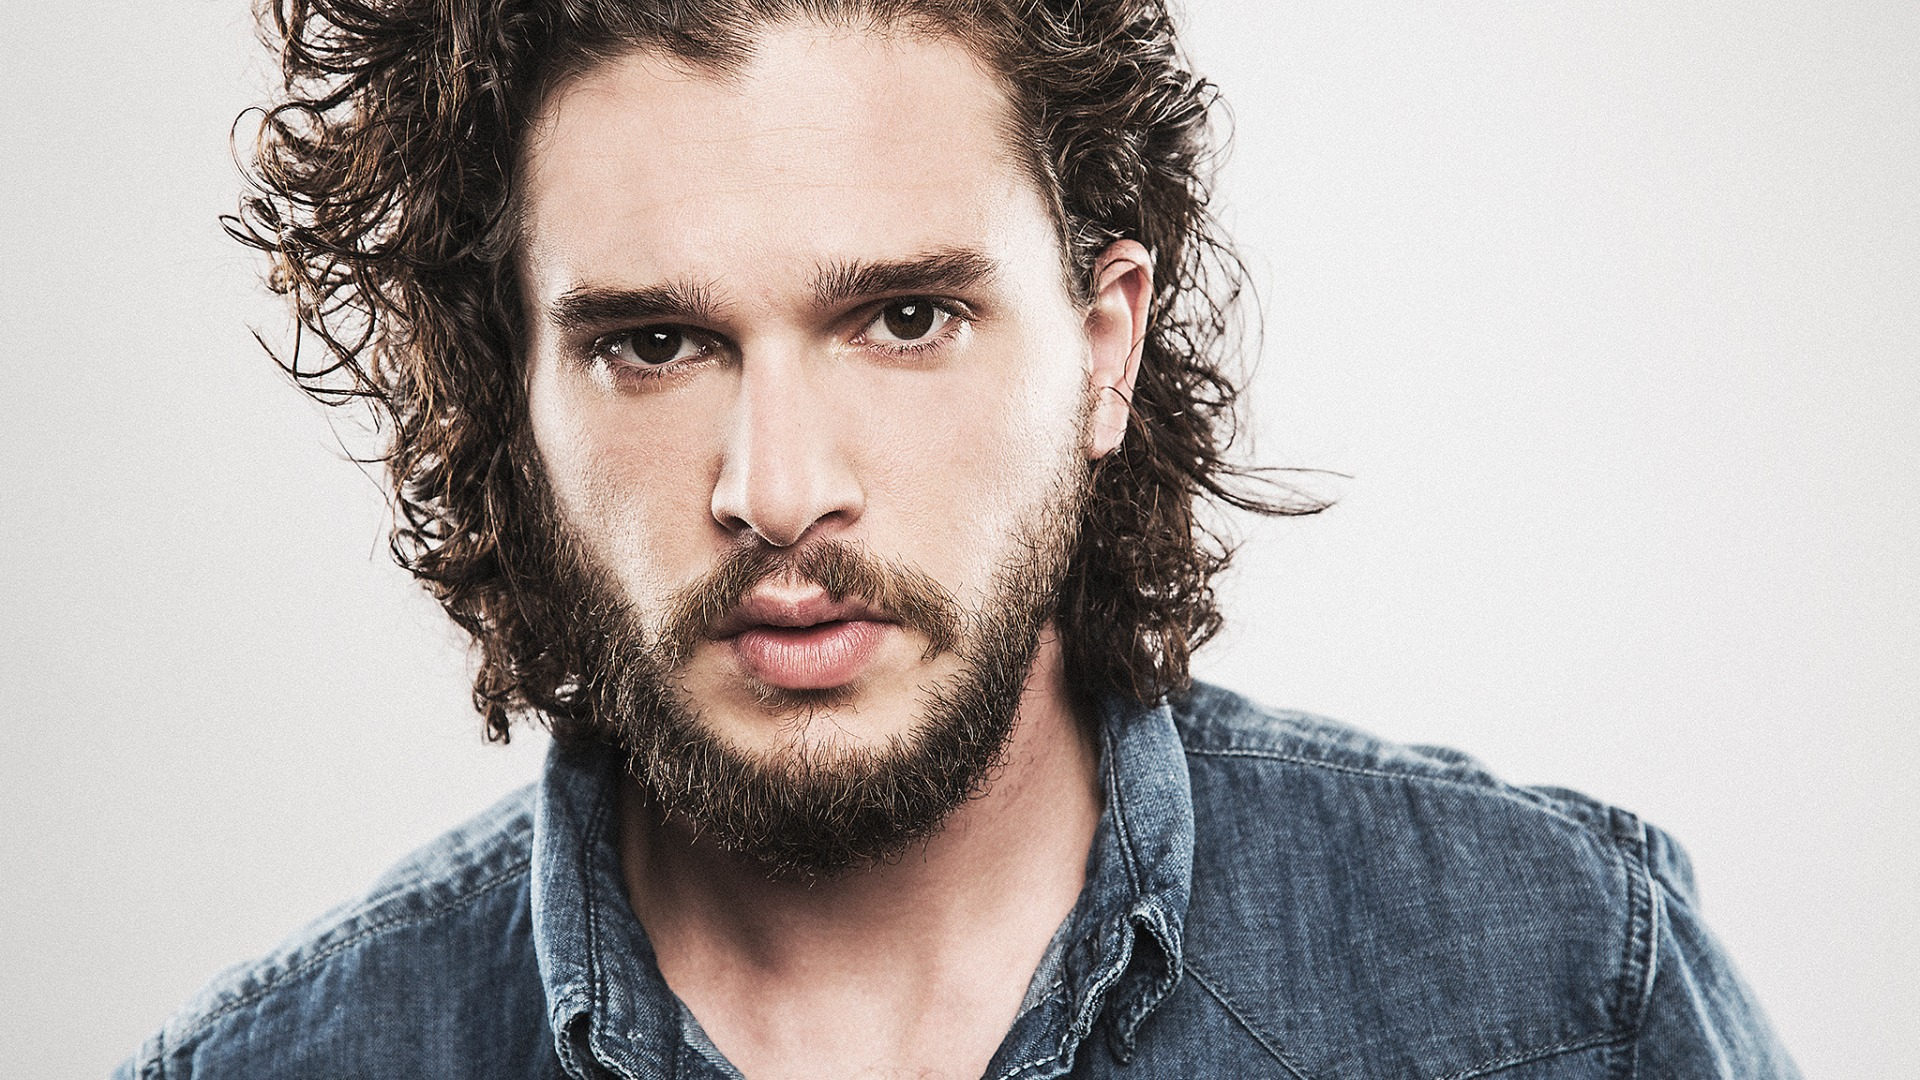 Curly Hairstyle Ideas For Men Haircut Design Trends Premium